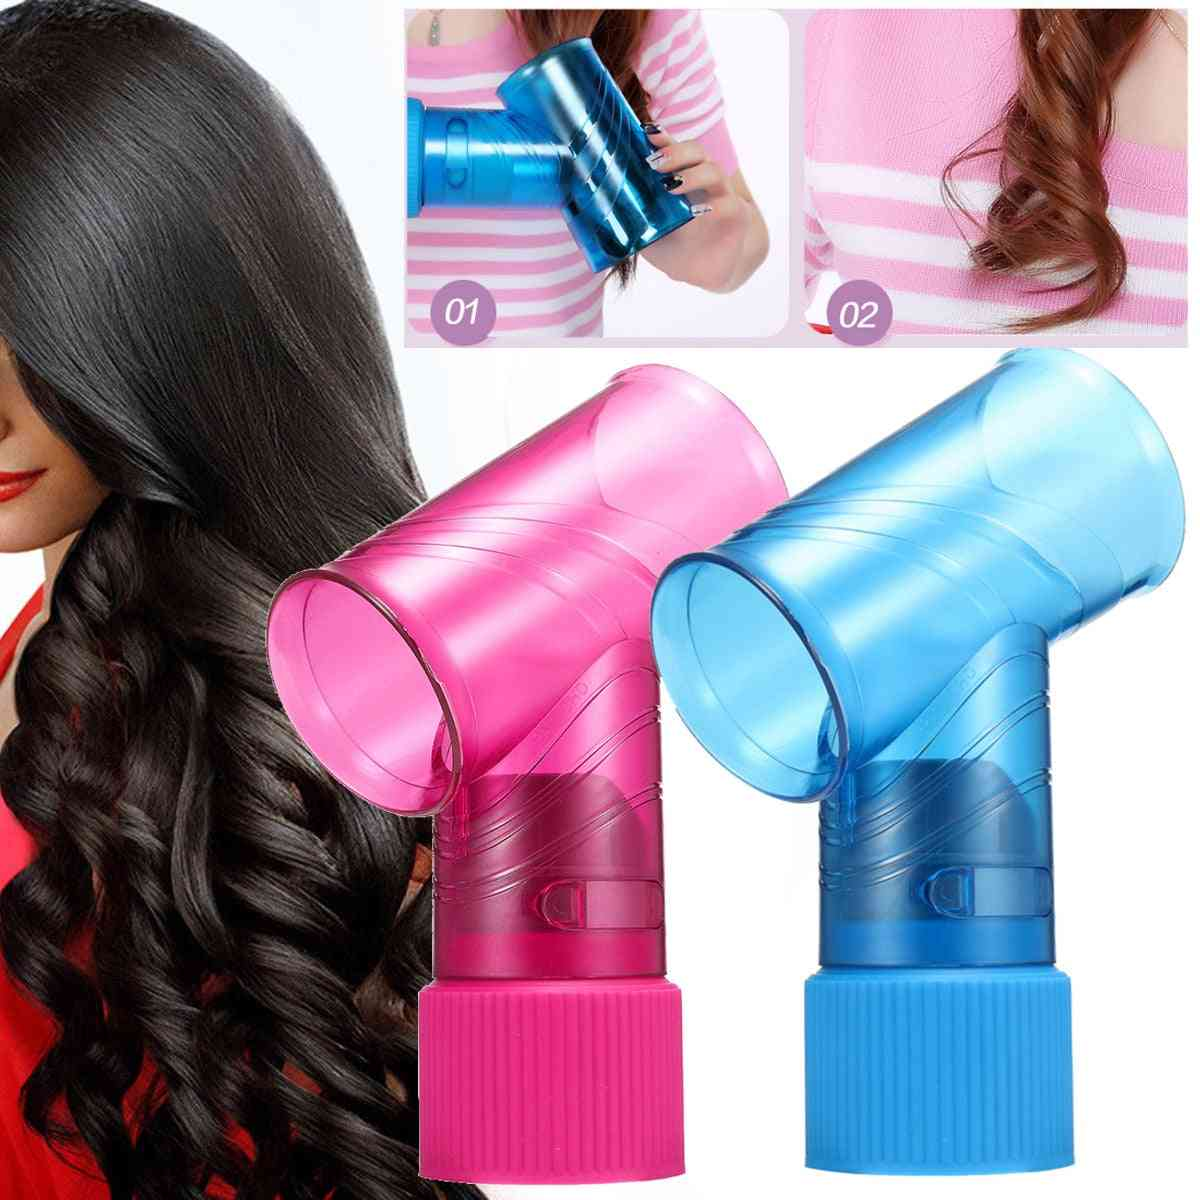 Portable Curly Hair Styling- Magic Spin Dryer Diffuser